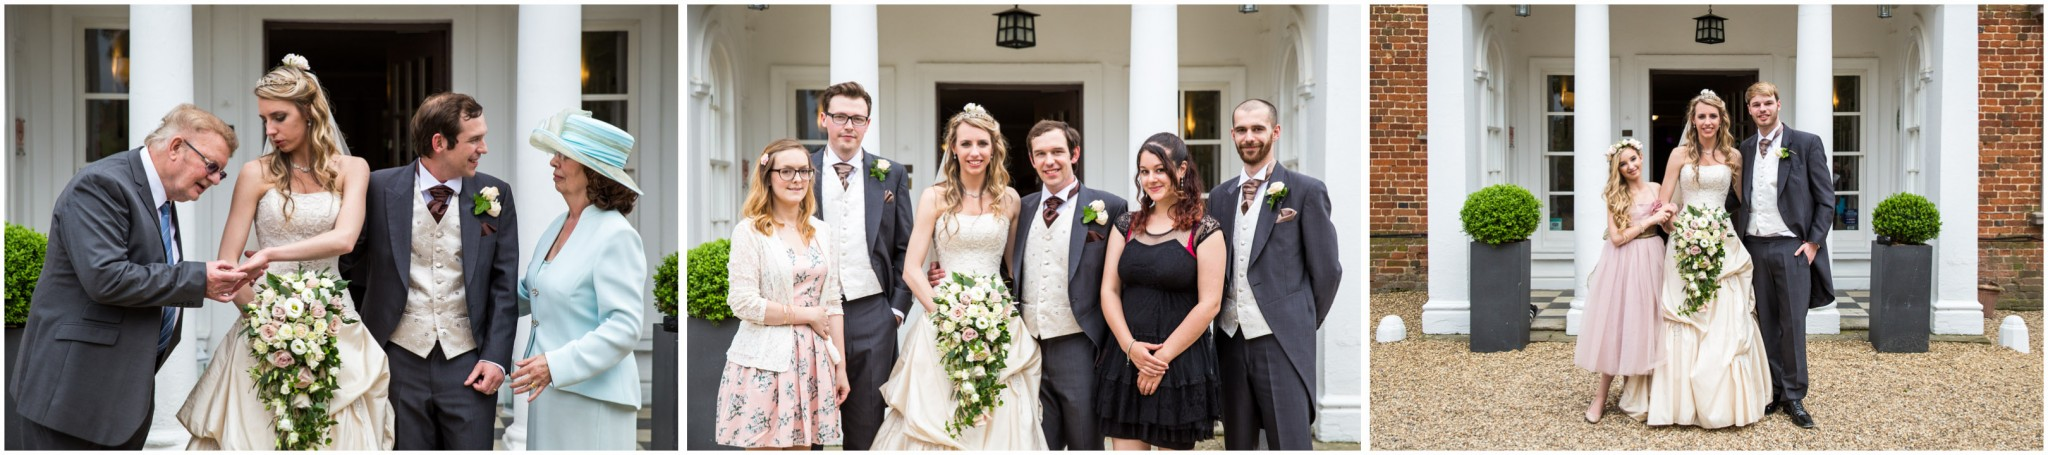 Highfield Park Wedding Photography the Wedding Party